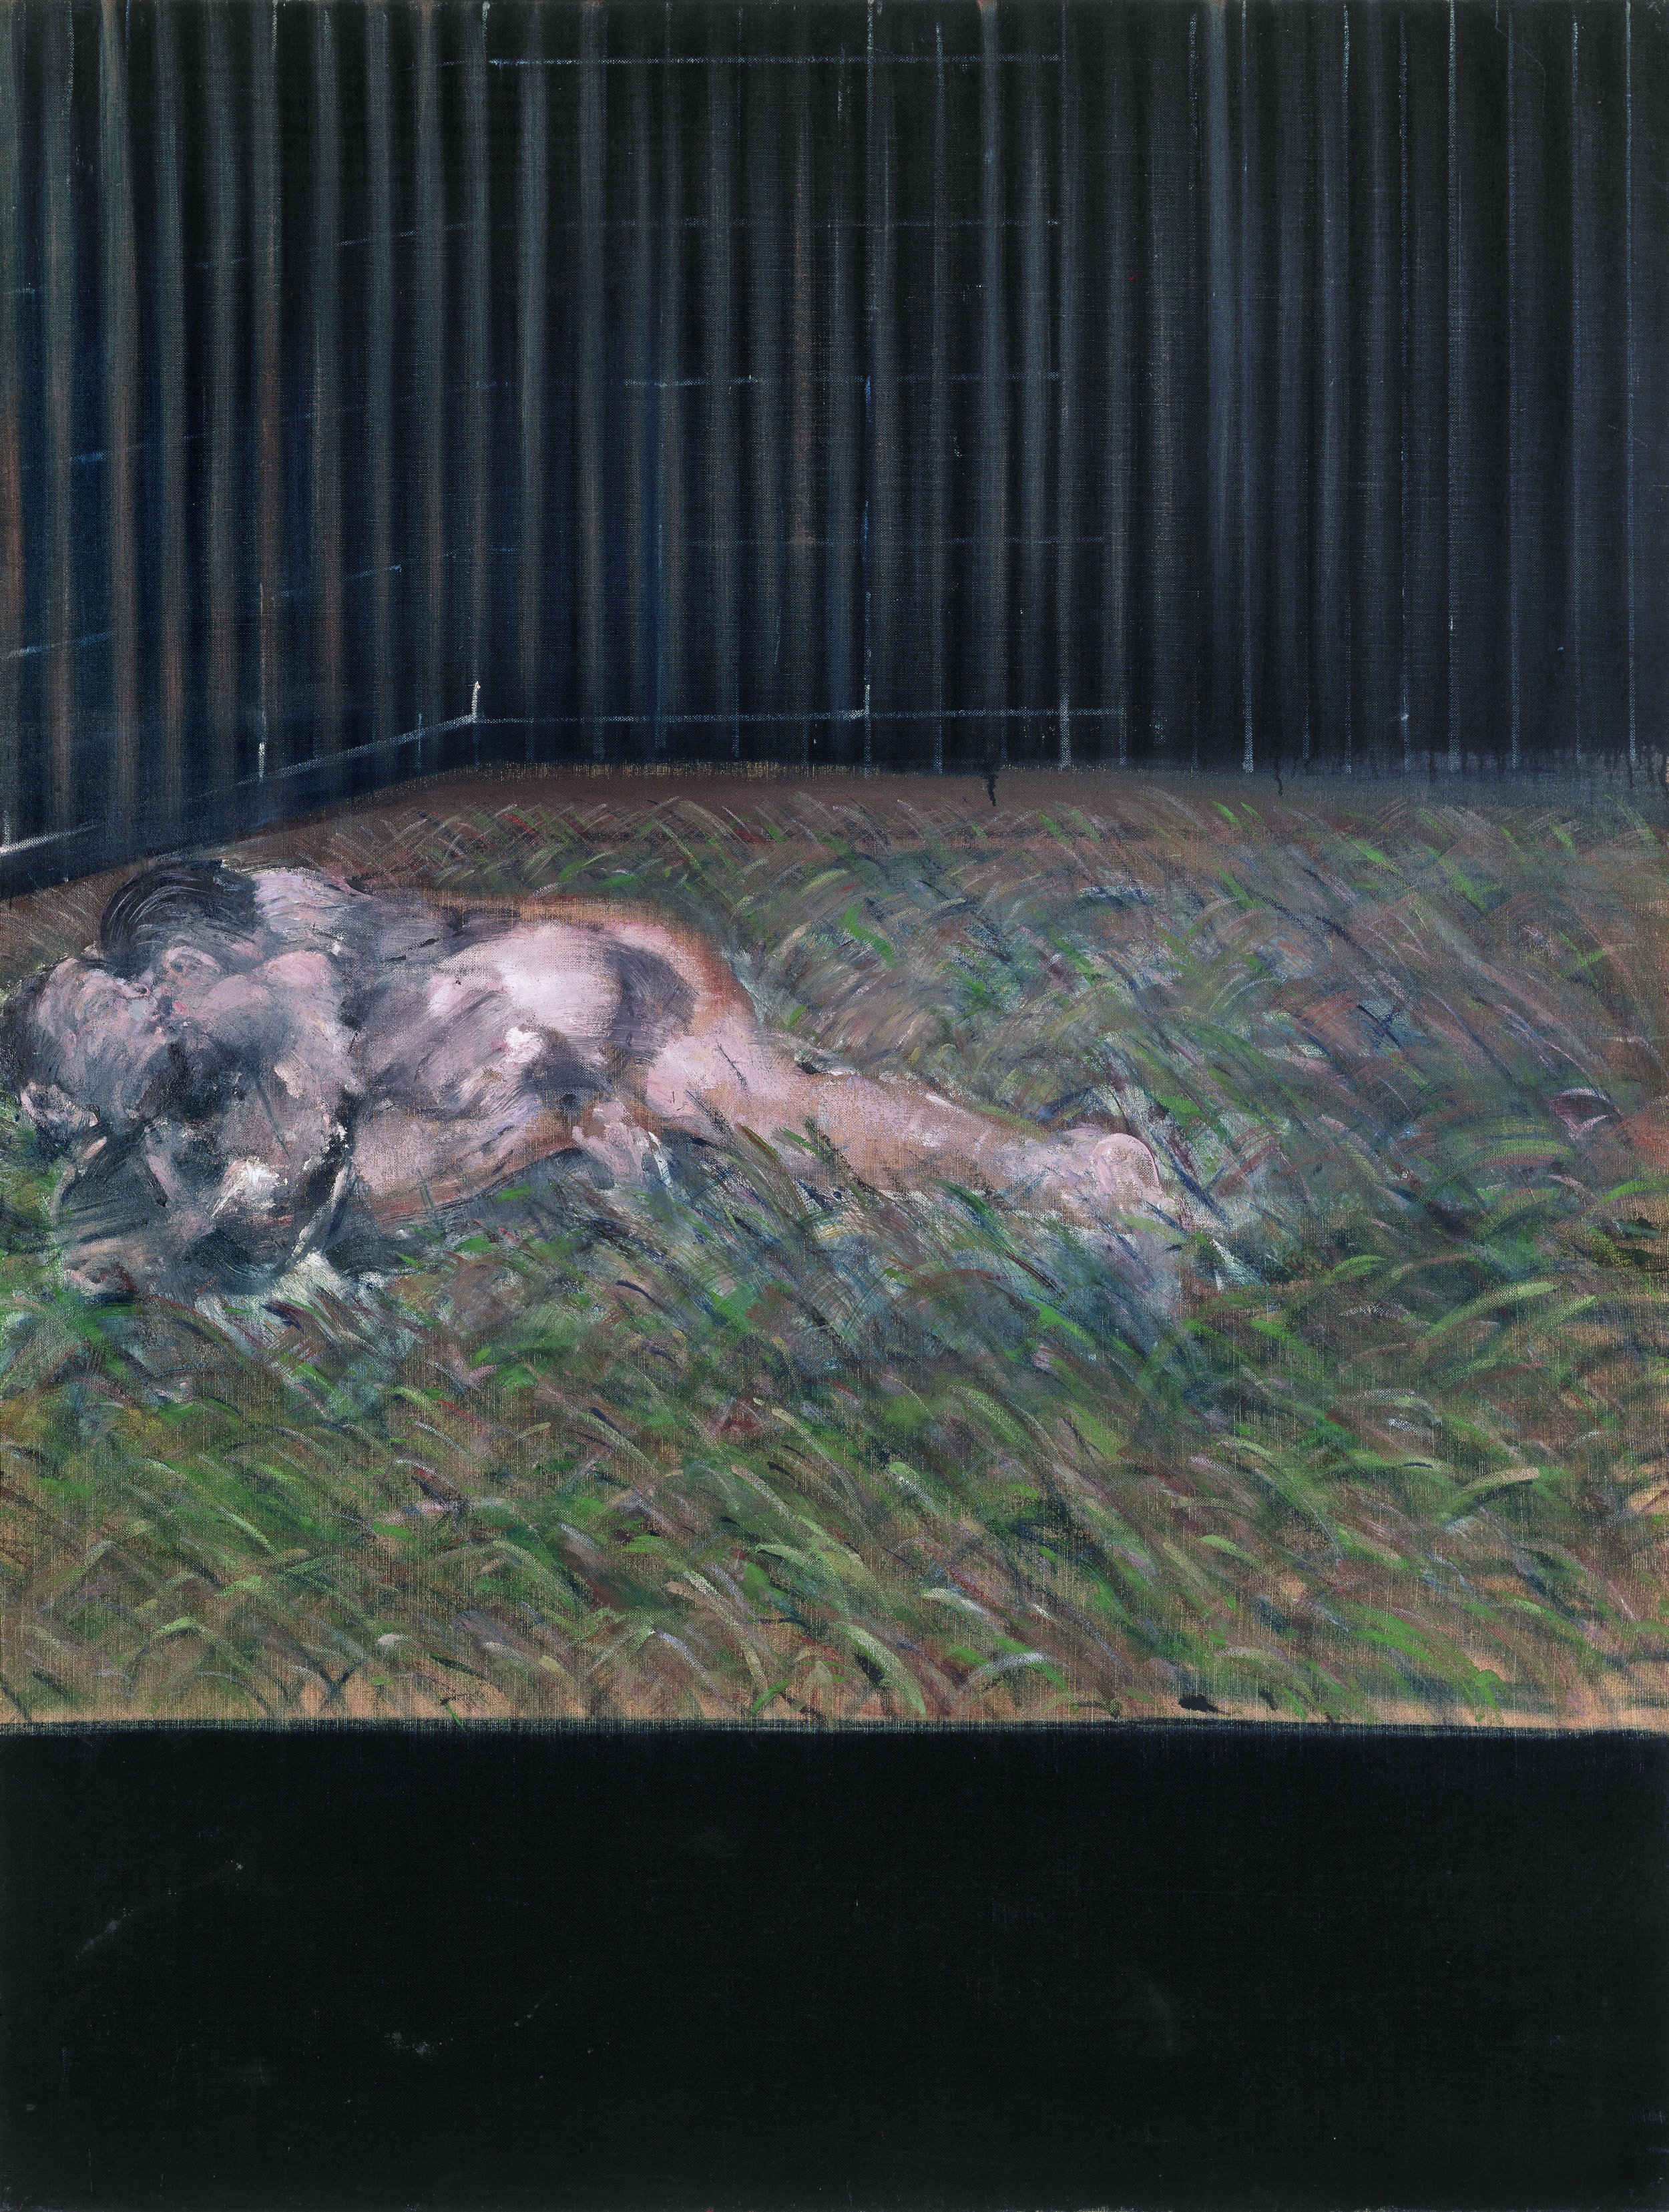 Francis Bacon.  Two Figures in the Grass , 1954. Oil on canvas. 152 x 117cm. © The Estate of Francis Bacon. All rights reserved, DACS/Artimage 2019. Photo: Prudence Cuming Associates Ltd. Courtesy Gagosian